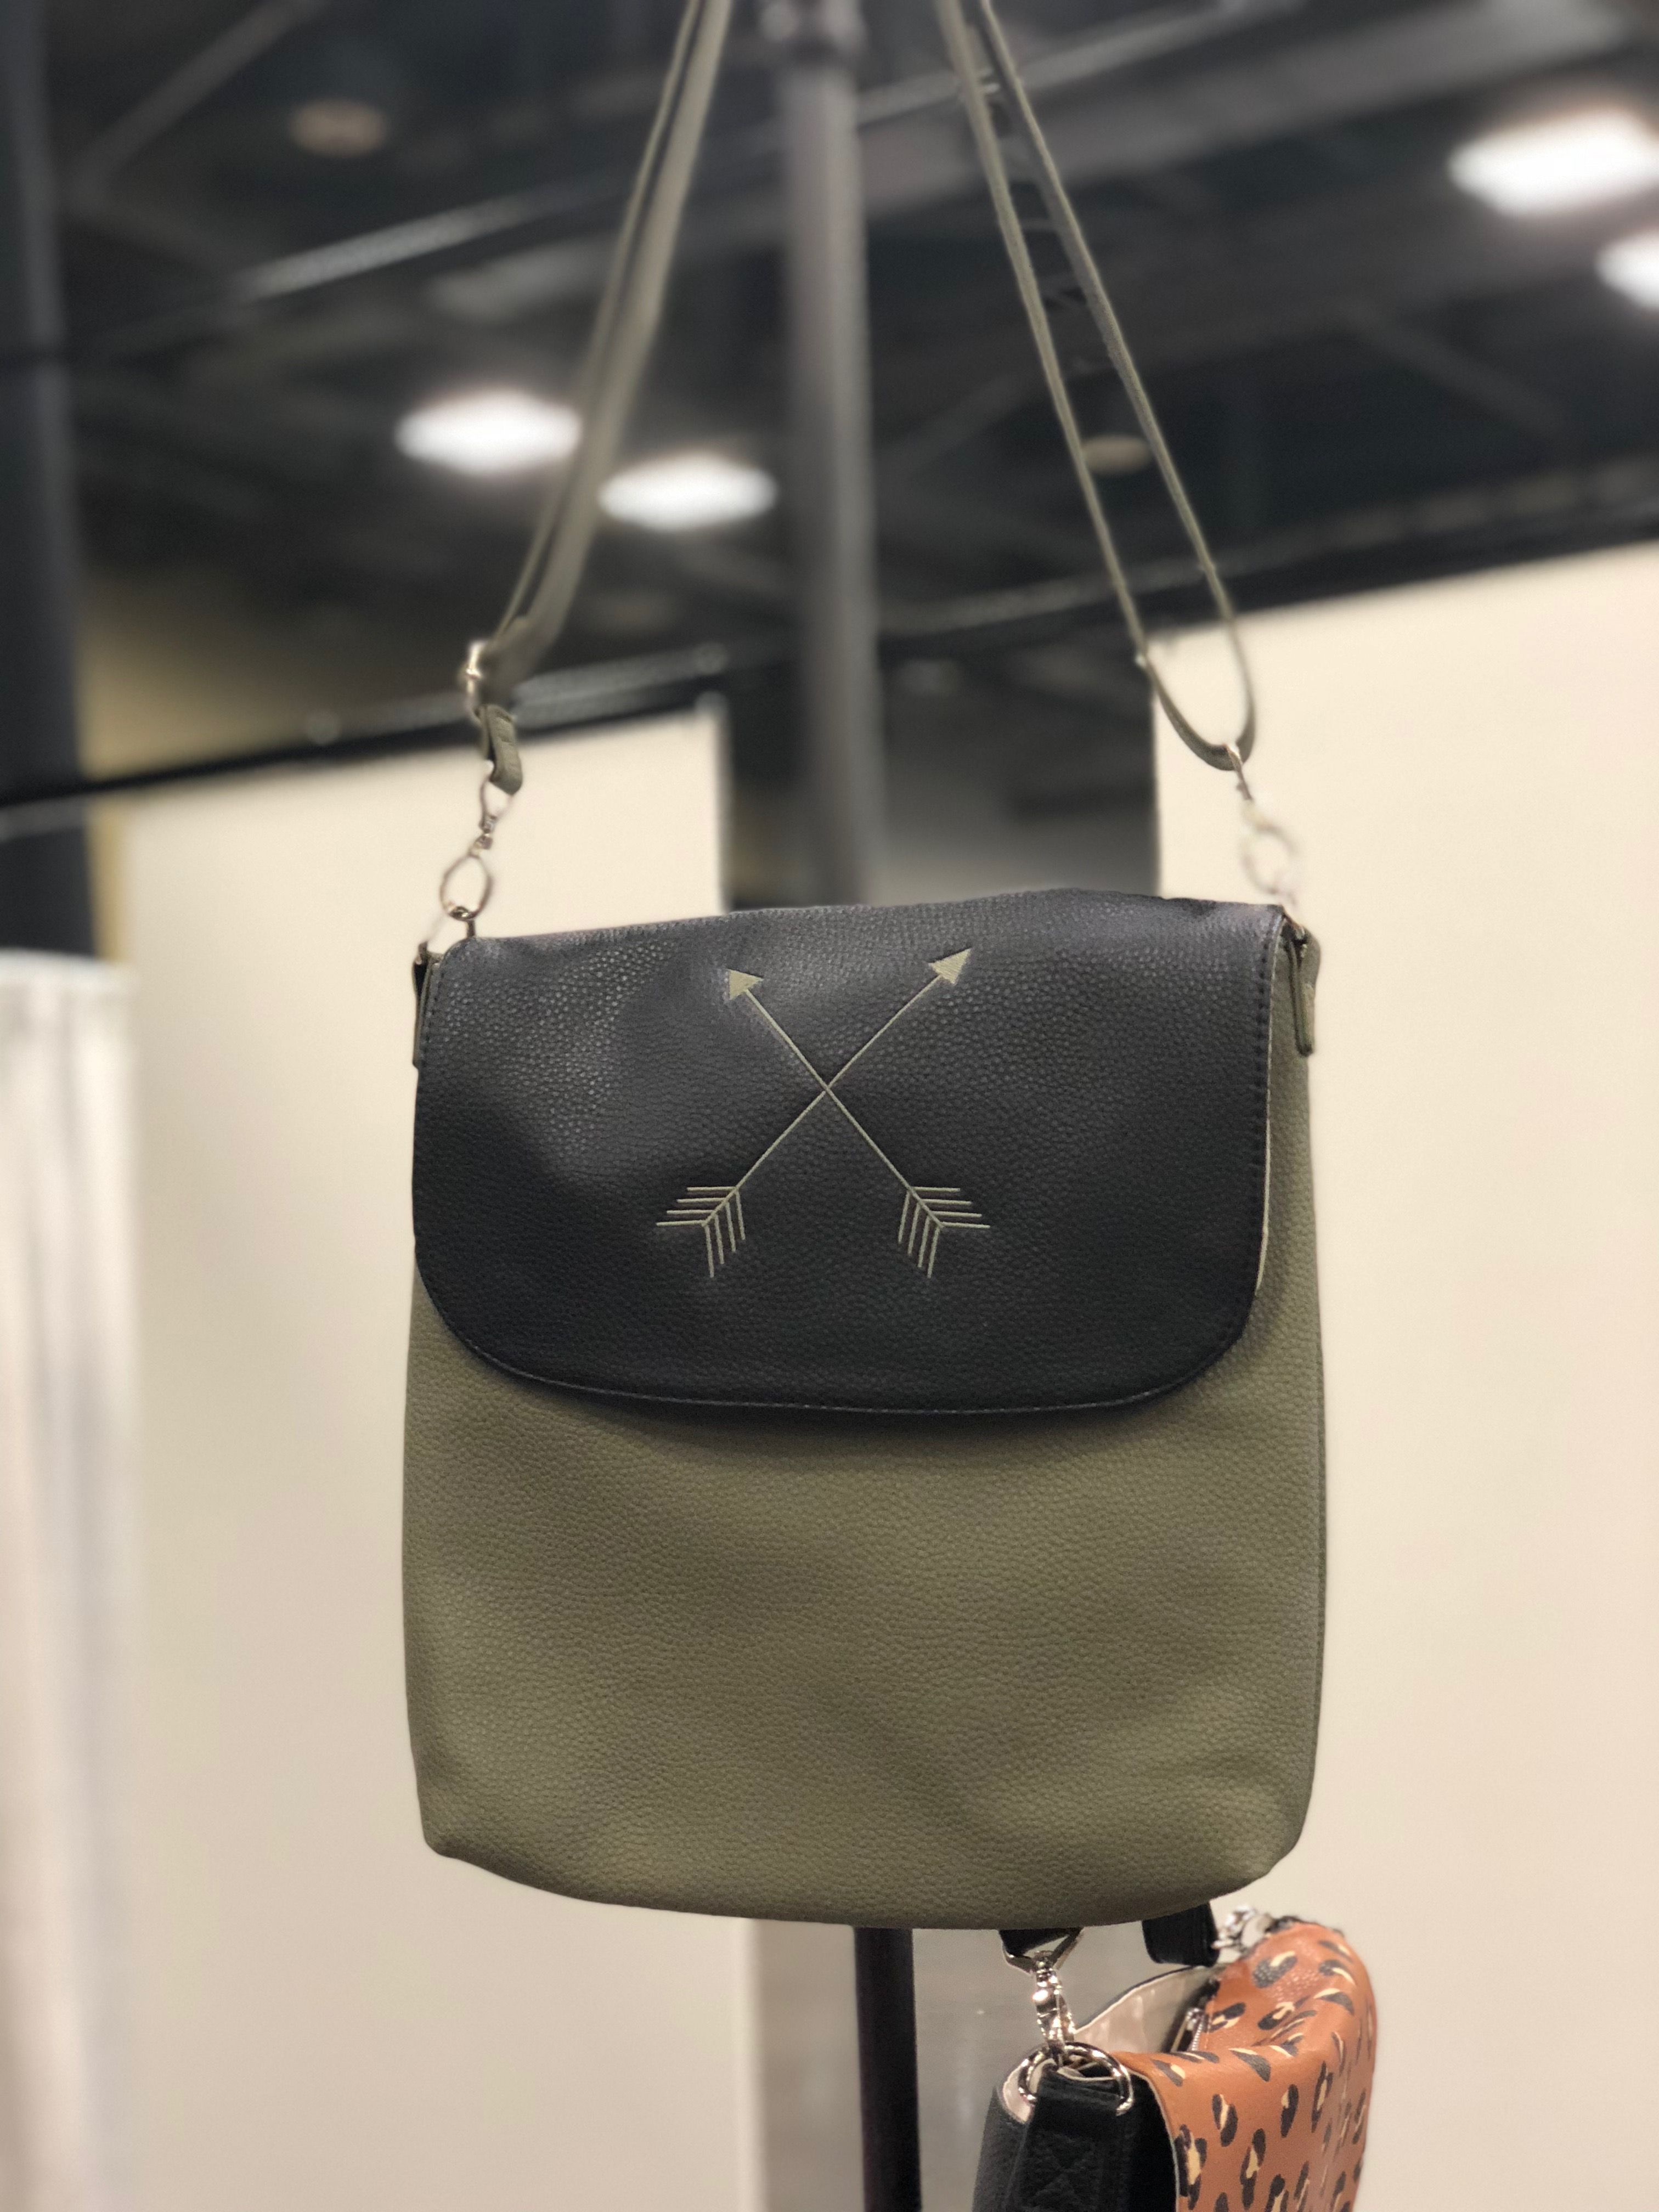 fe6564c55d03 Studio Thirty-One purse Modern body in Ooh-La-La Olive with Olive crossbody  strap and Black Beauty flap with arrows monogram personalization